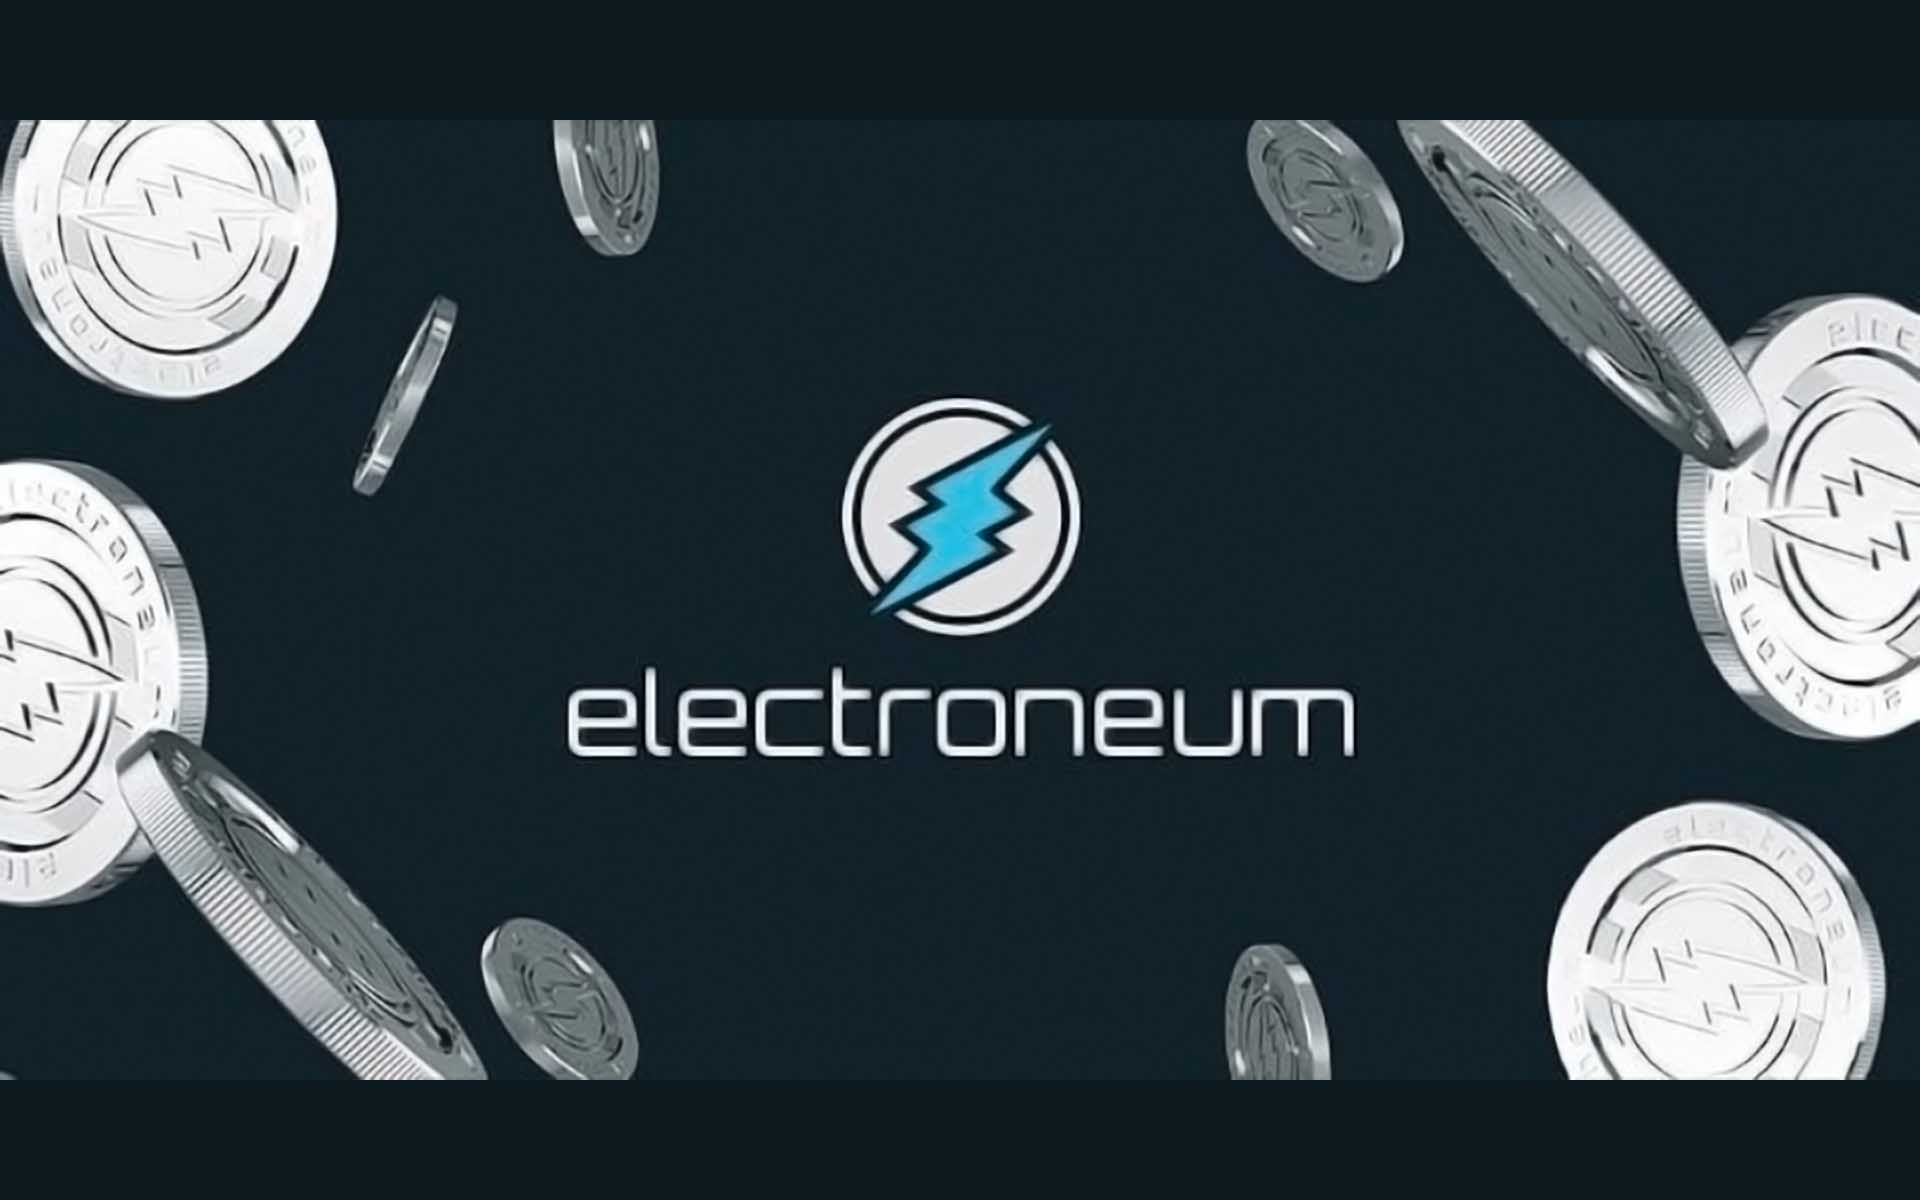 Electroneum Announces Patent Pending Technology For Instant Transactions & Crypto Subscriptions